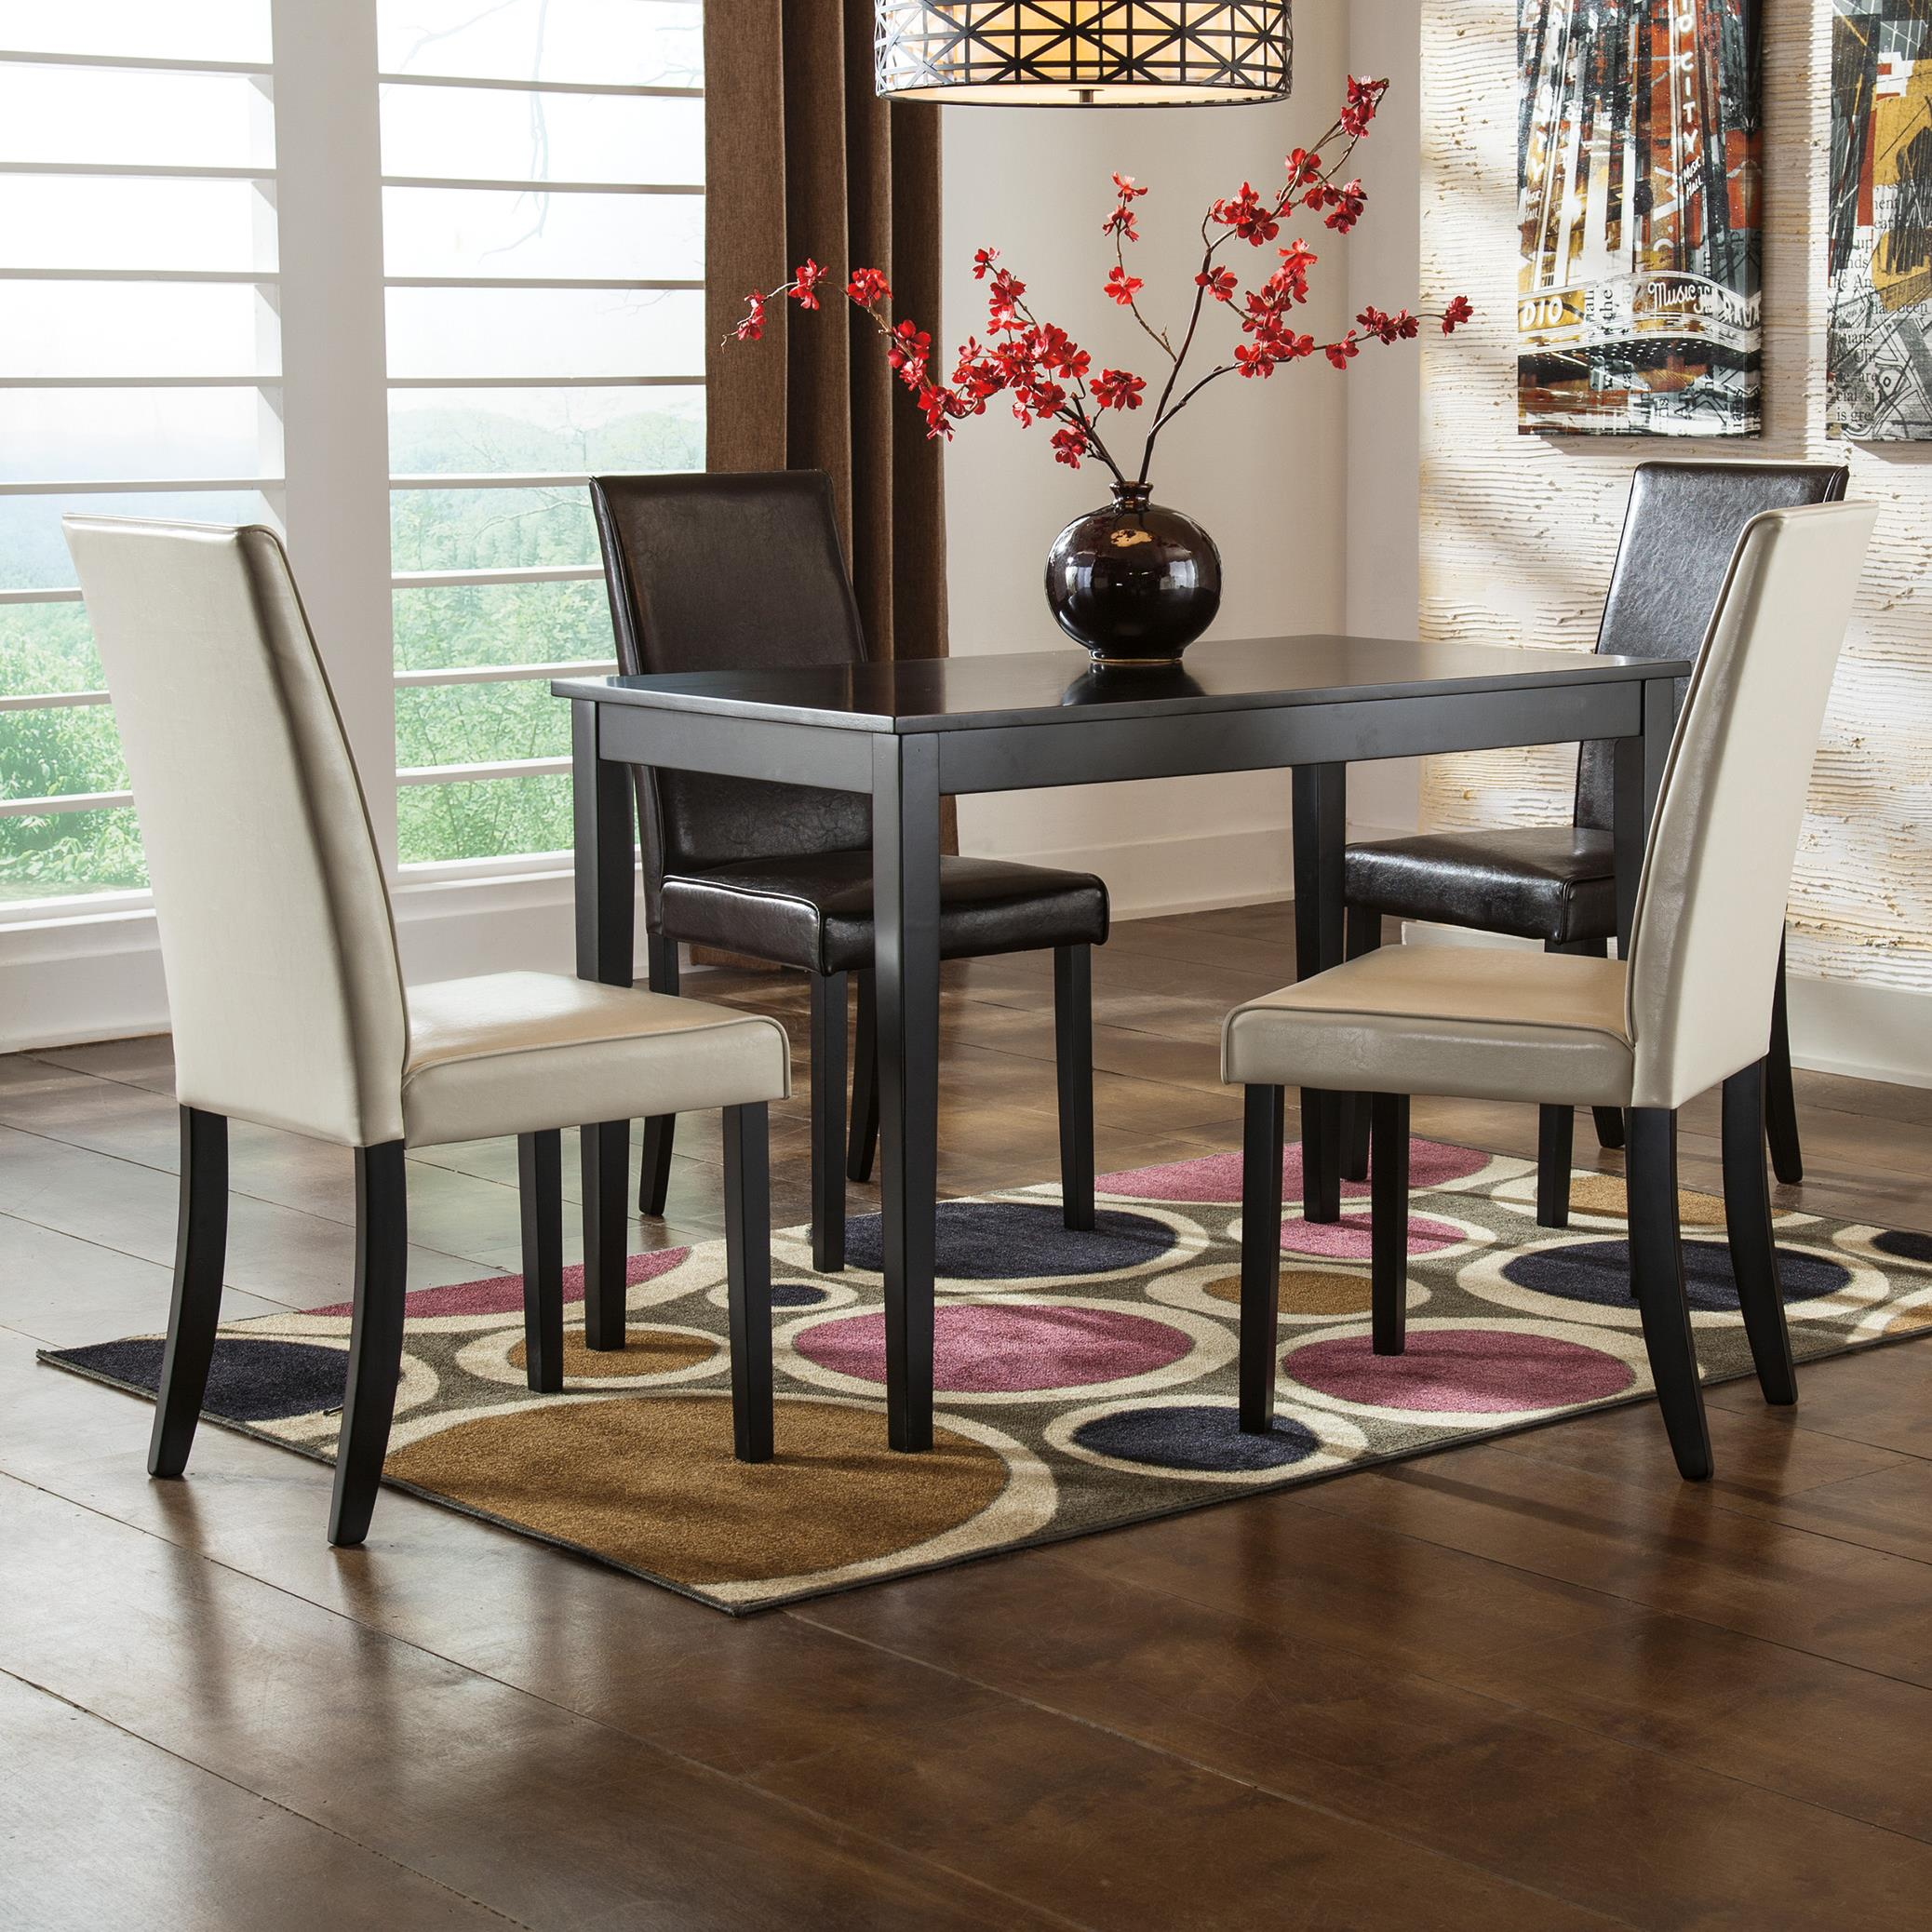 Kimonte 5-Piece Rectangular Table Set by Signature Design by Ashley at Northeast Factory Direct